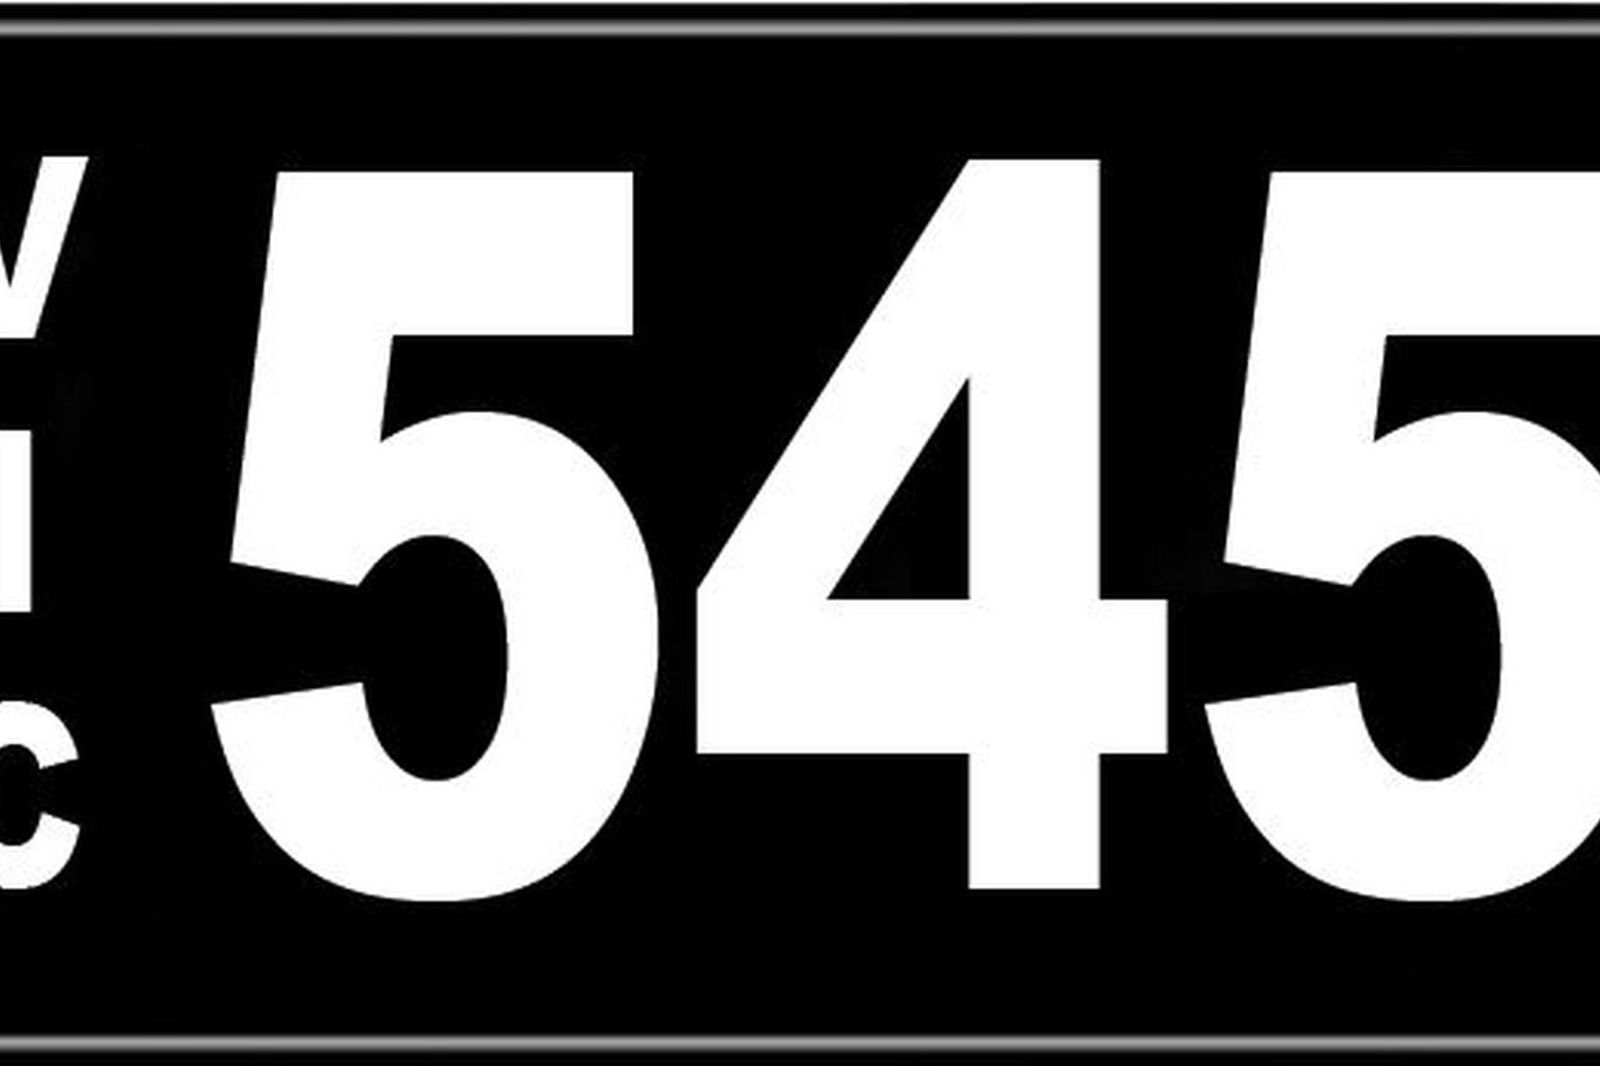 Number Plates - Victorian Numerical Number Plates - '545'